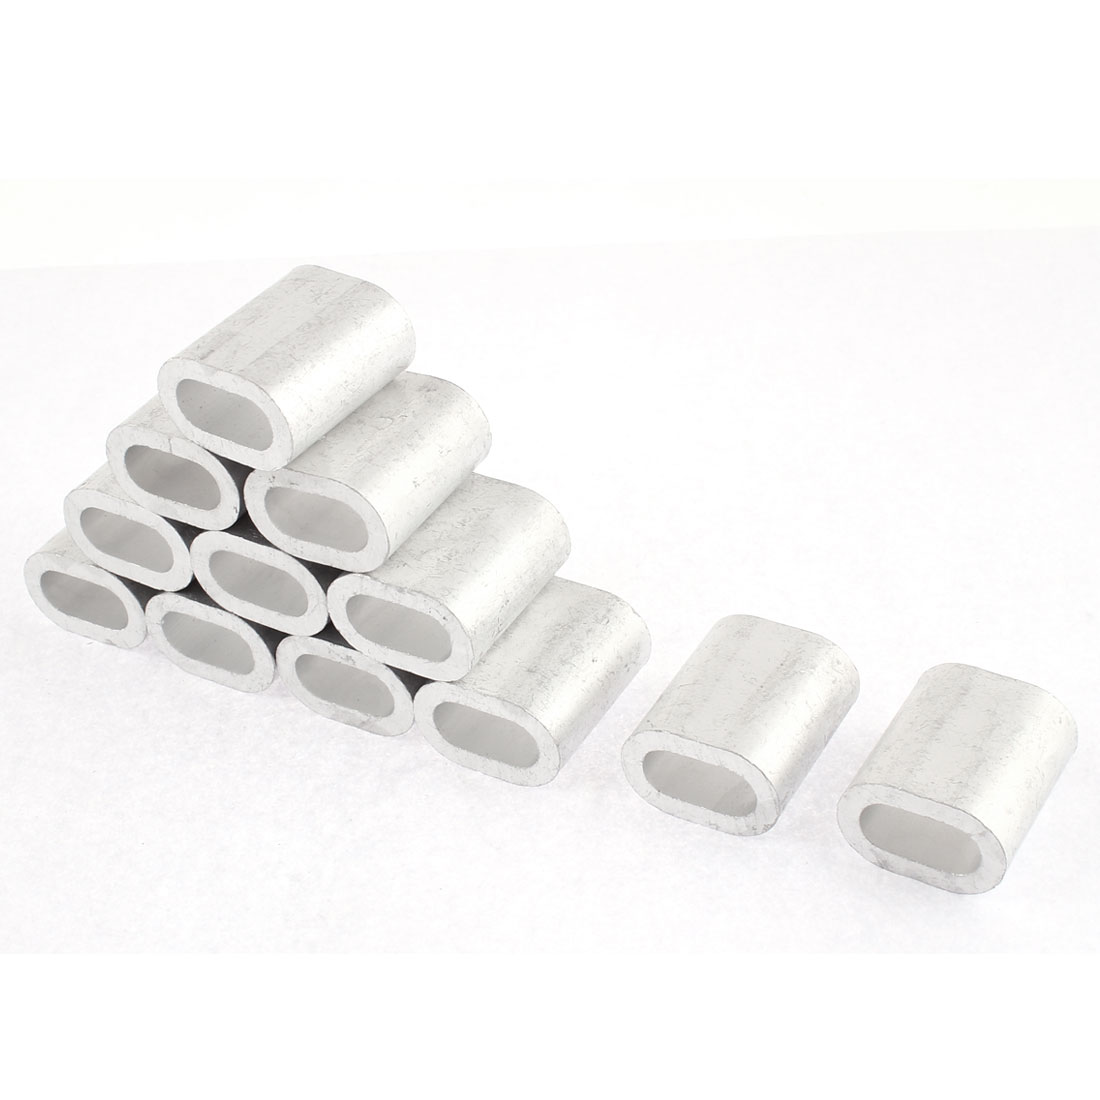 "10mm 25/64"" Steel Wire Rope Aluminum Ferrules Sleeves Fittings Loop Clips 12 Pcs"